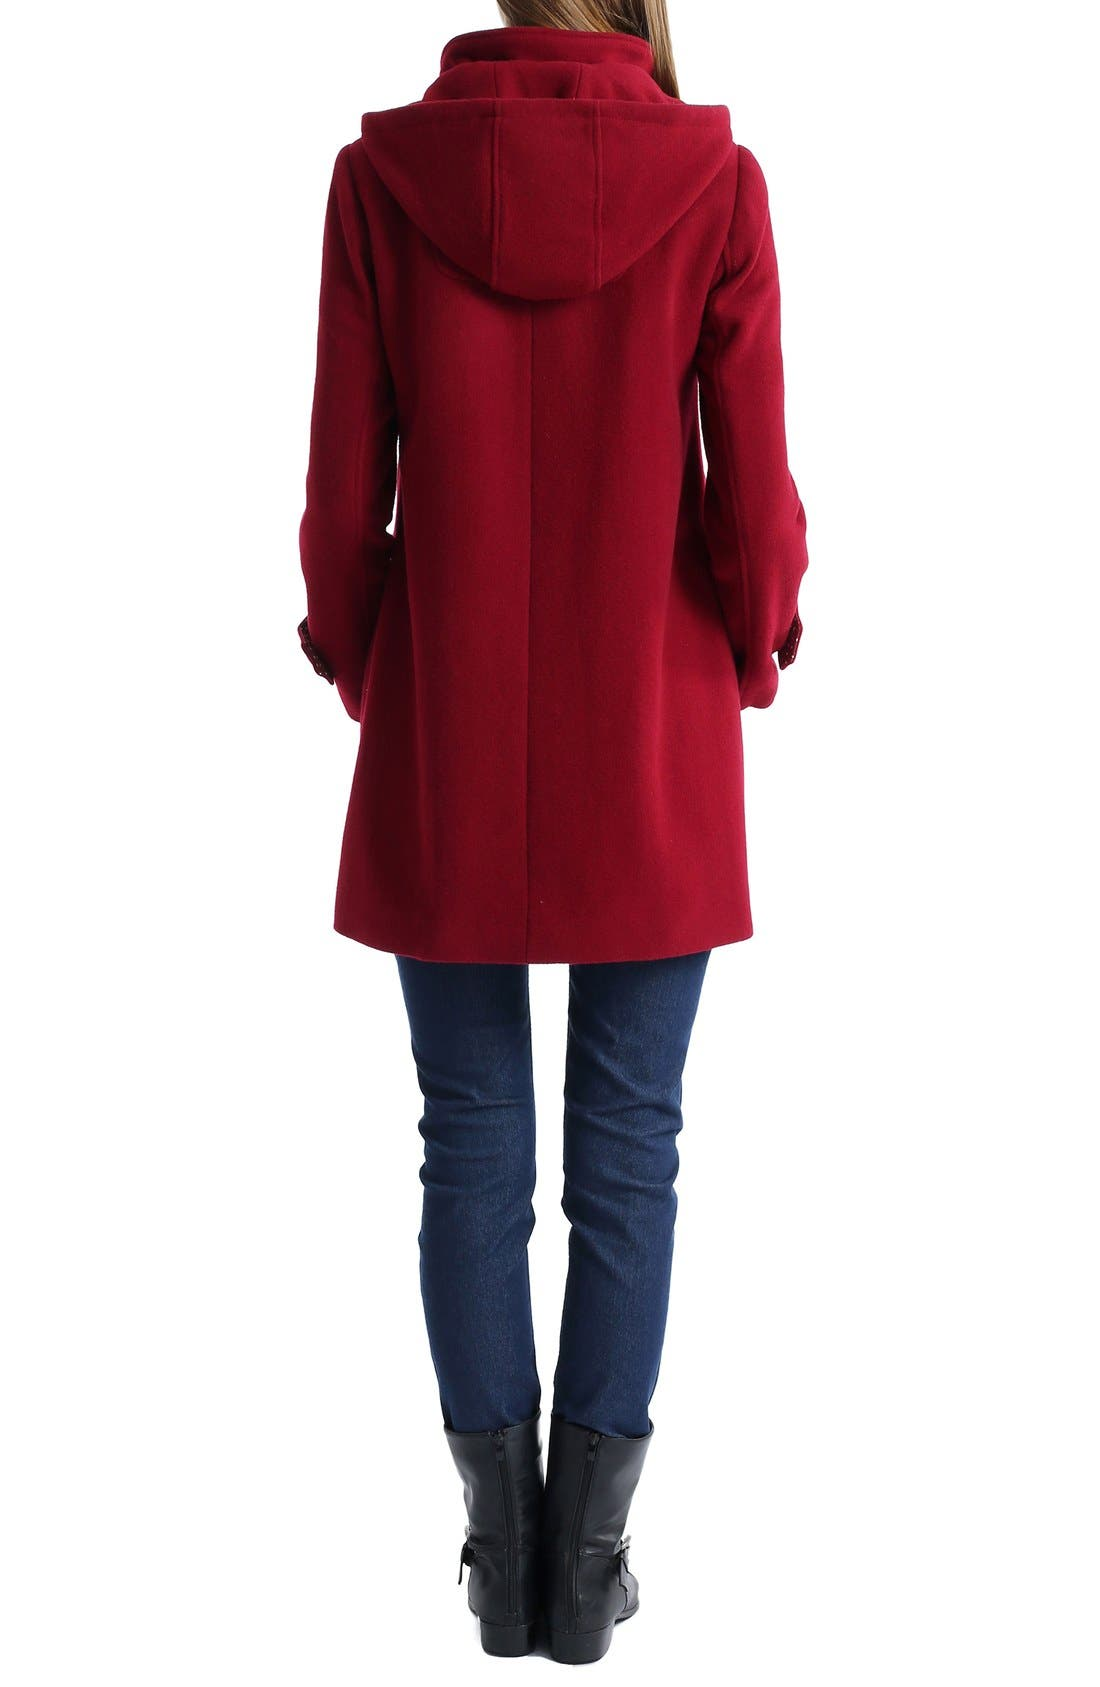 'Penelope' Maternity Trench Coat,                             Alternate thumbnail 2, color,                             Wine